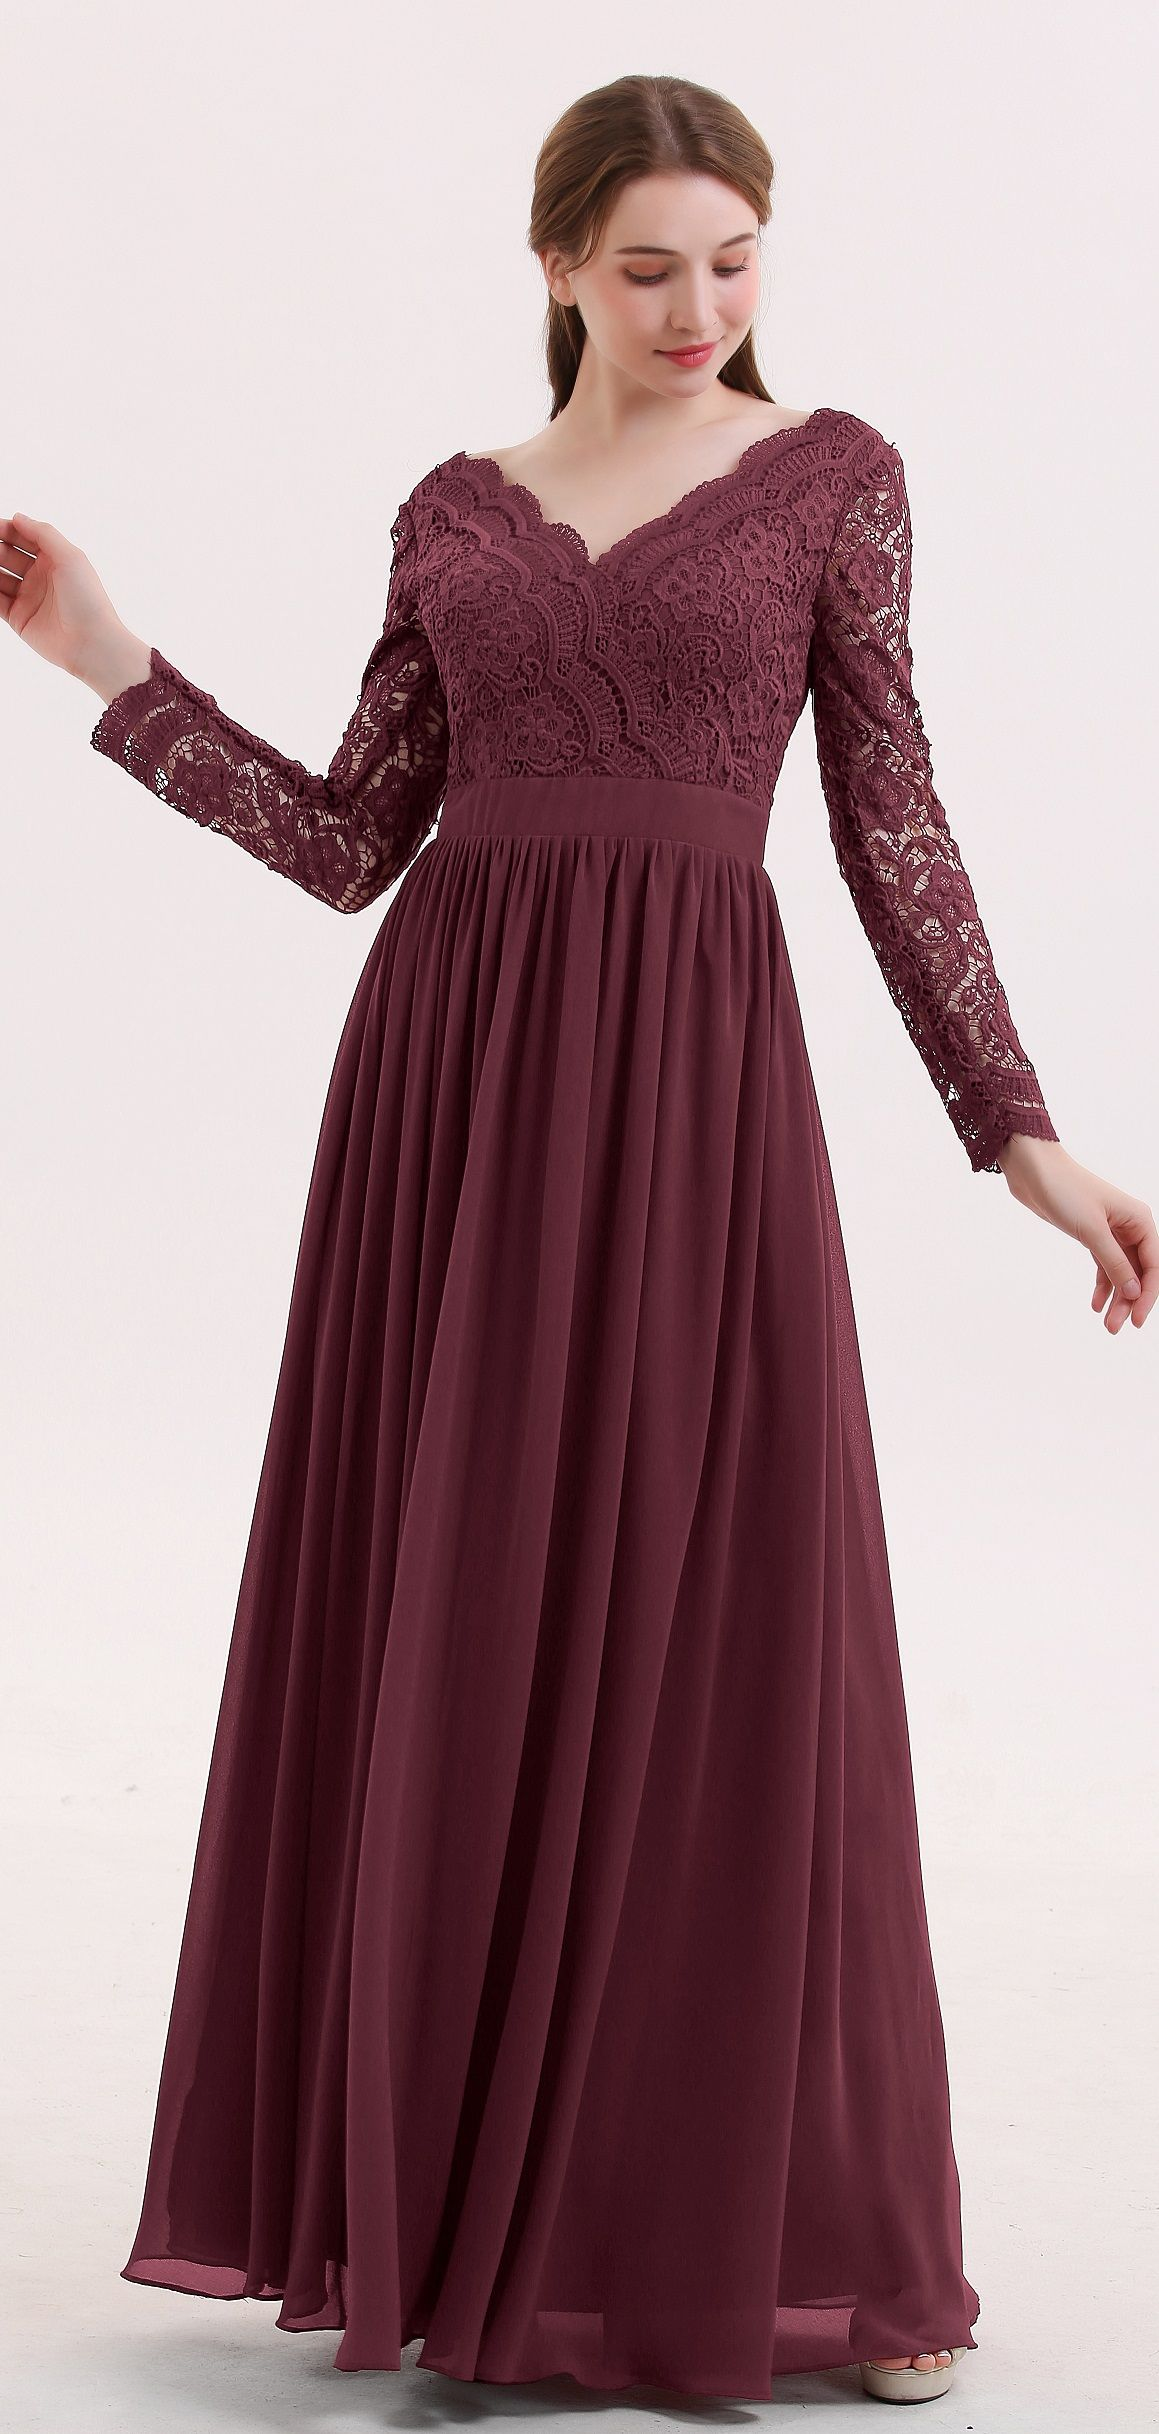 96ff2db0592 BABARONI Long sleeves bridesmaid dresses in cabernet color